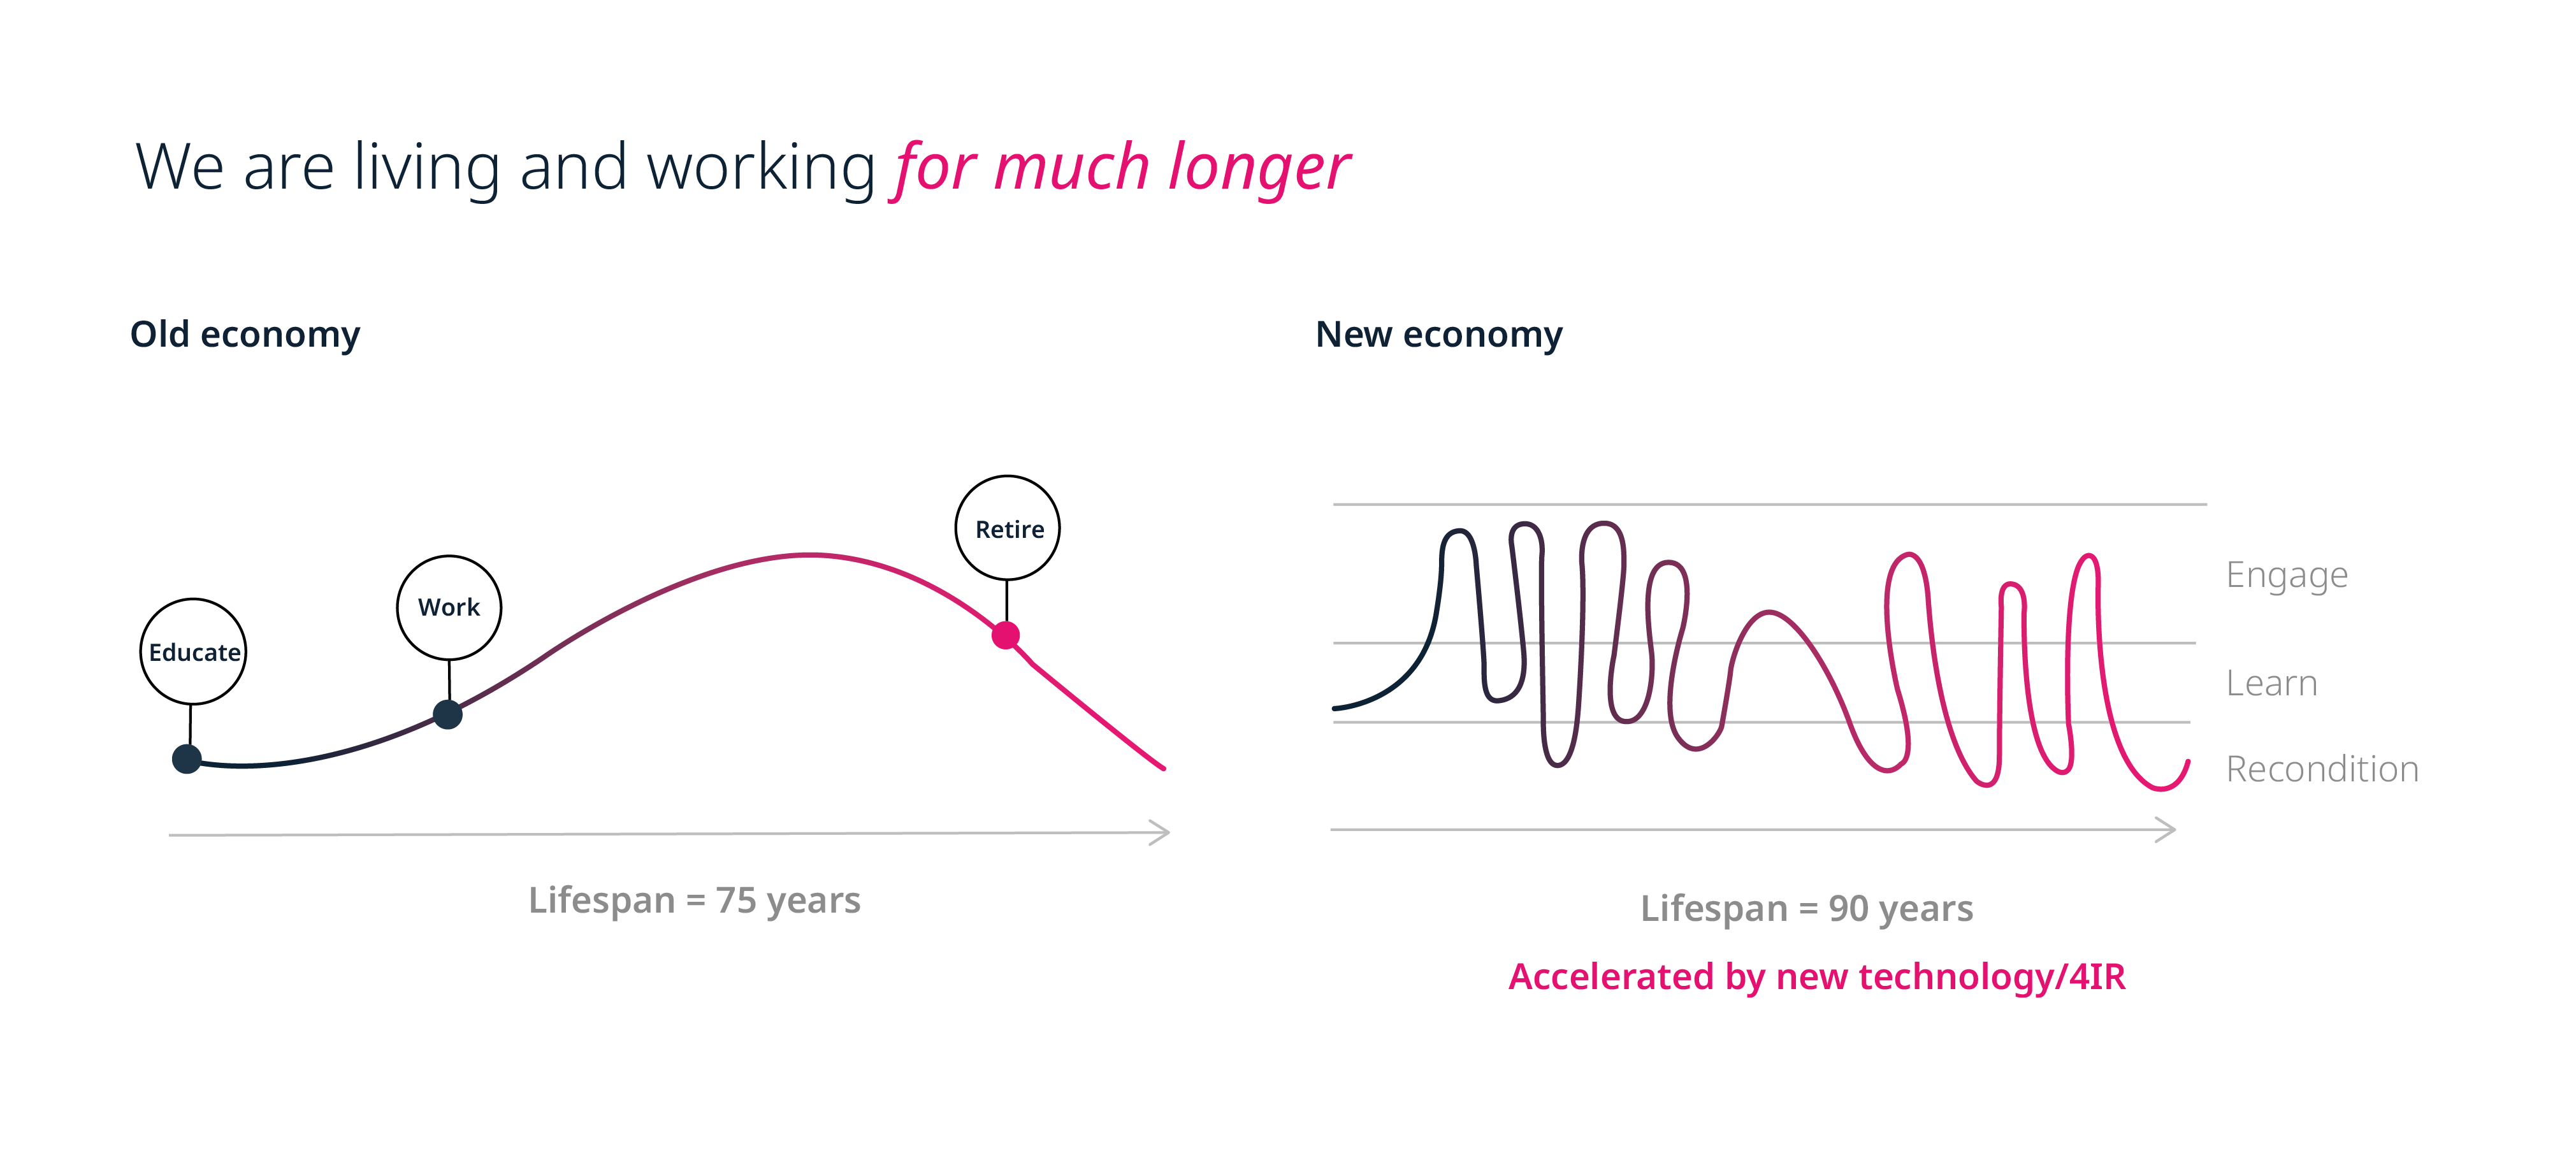 Old economy vs new economy and why people are living and working for much longer